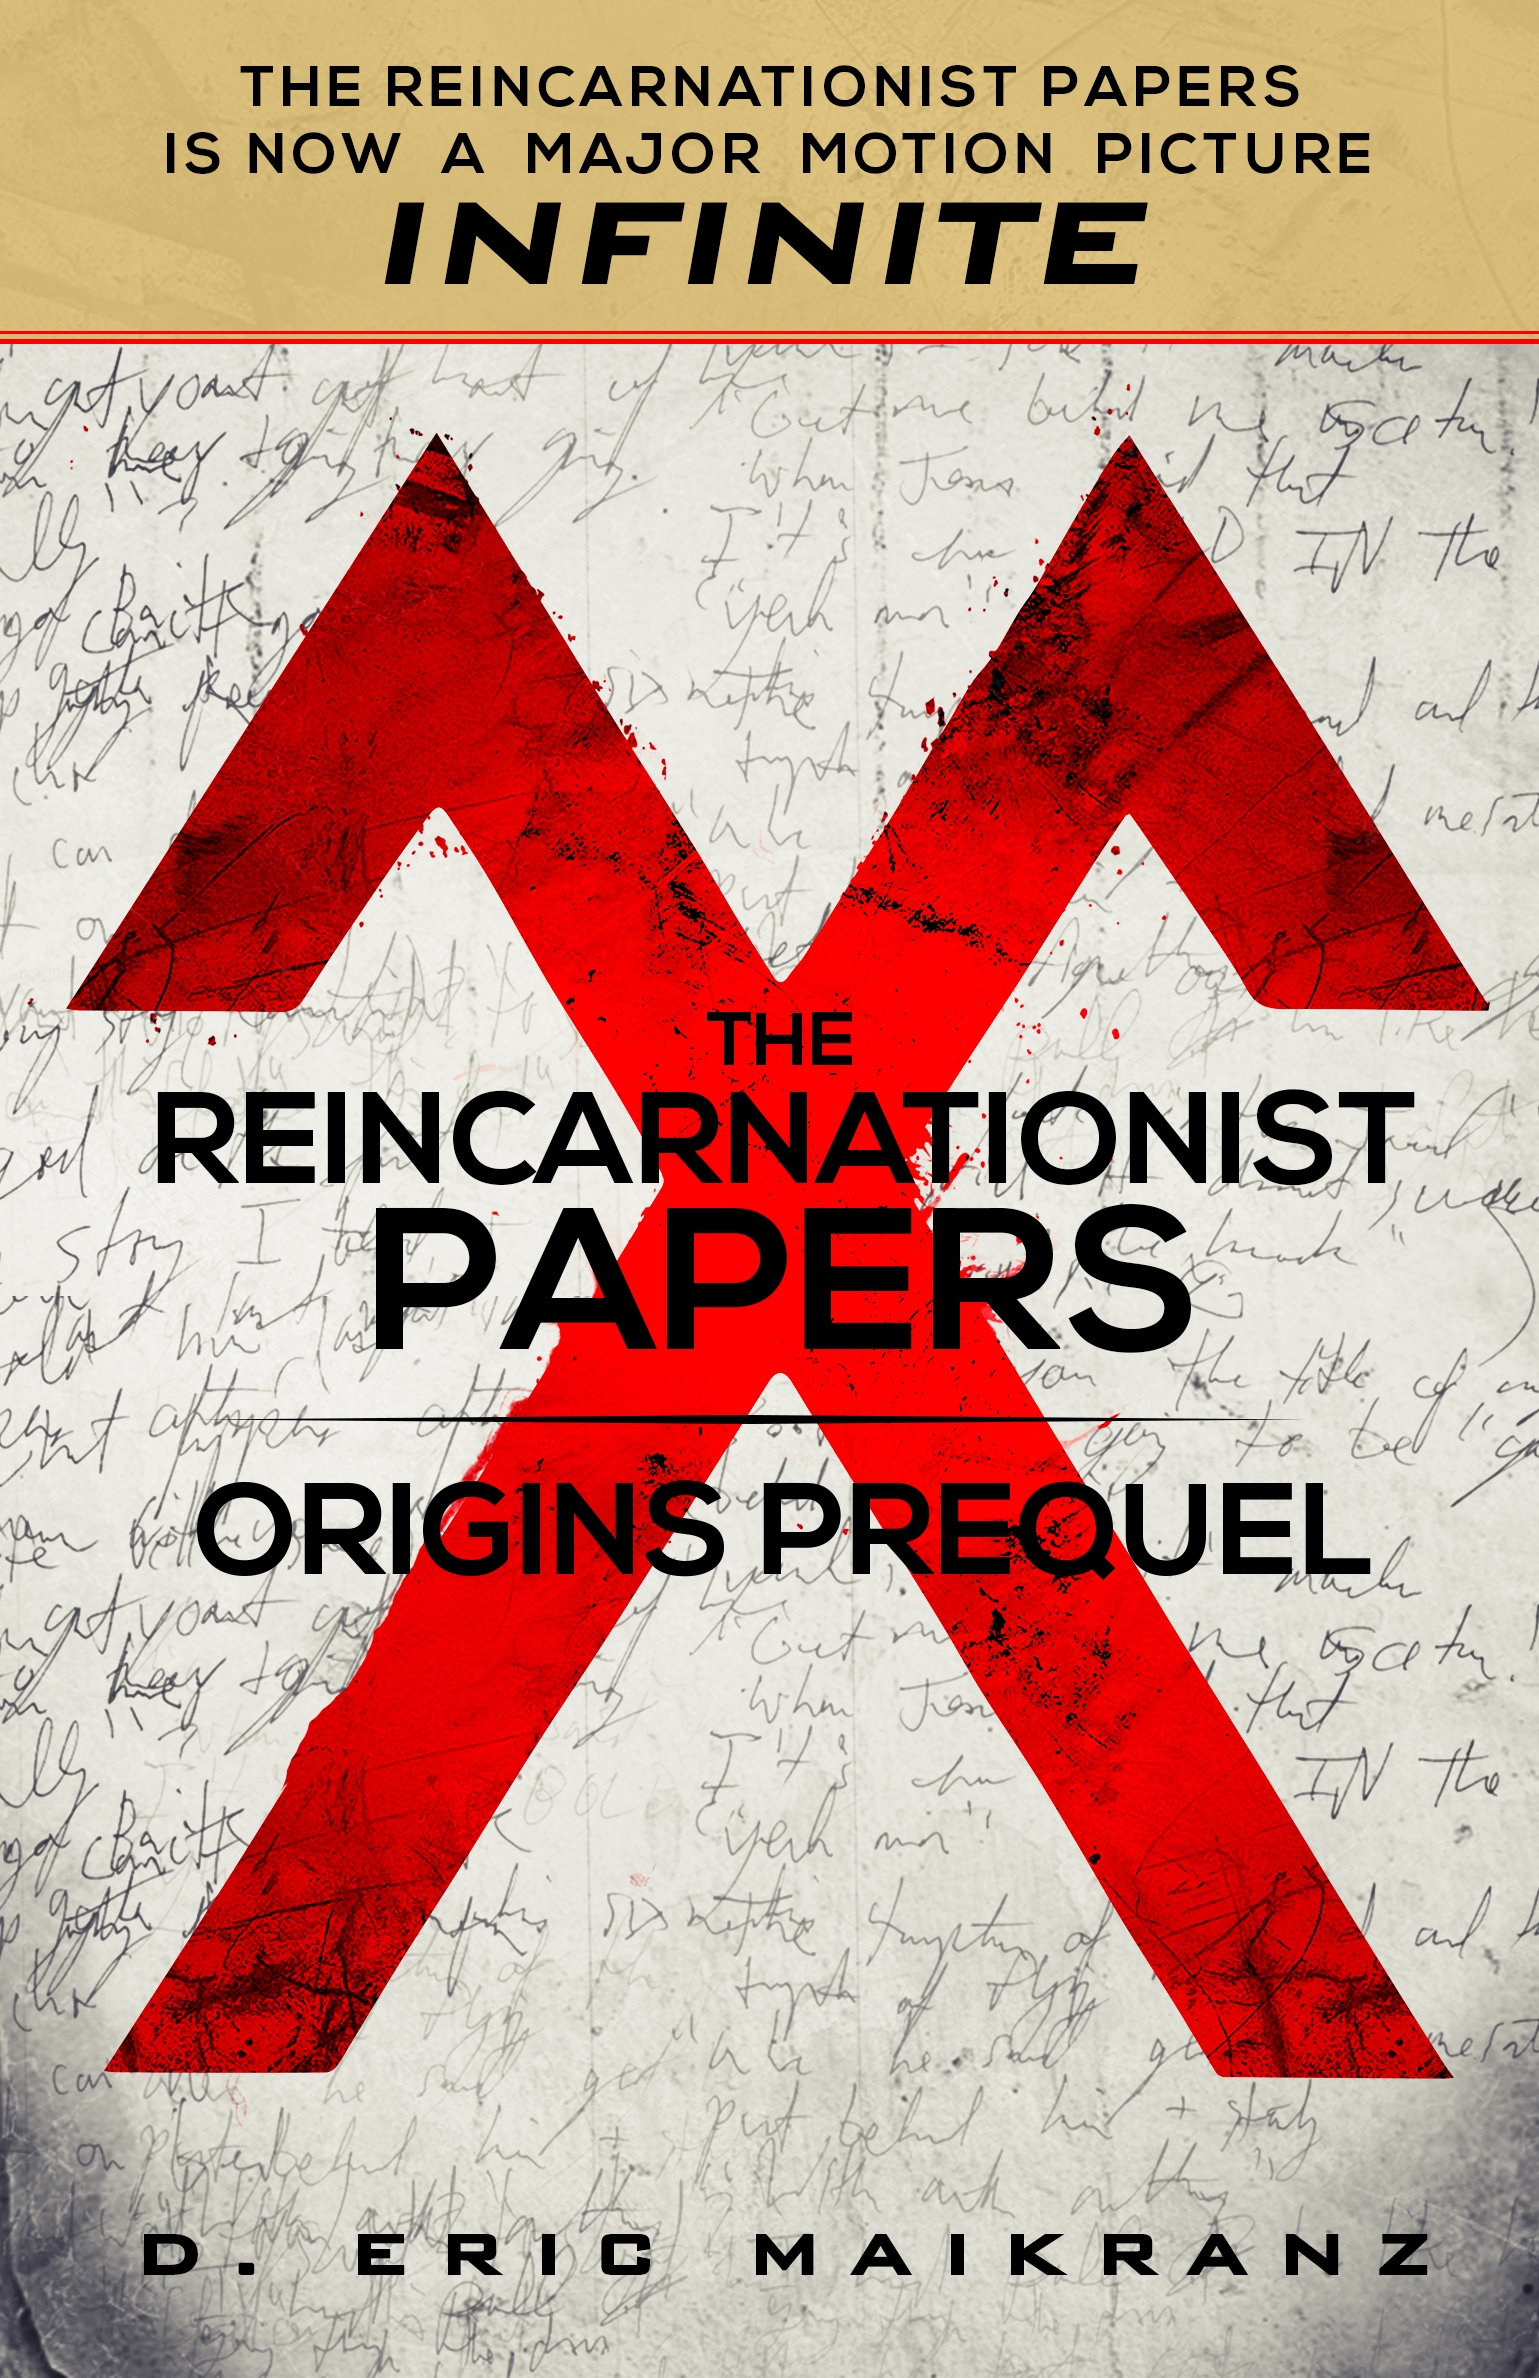 The-Reincarnationist-Papers-white-ebook-cropped.jpg